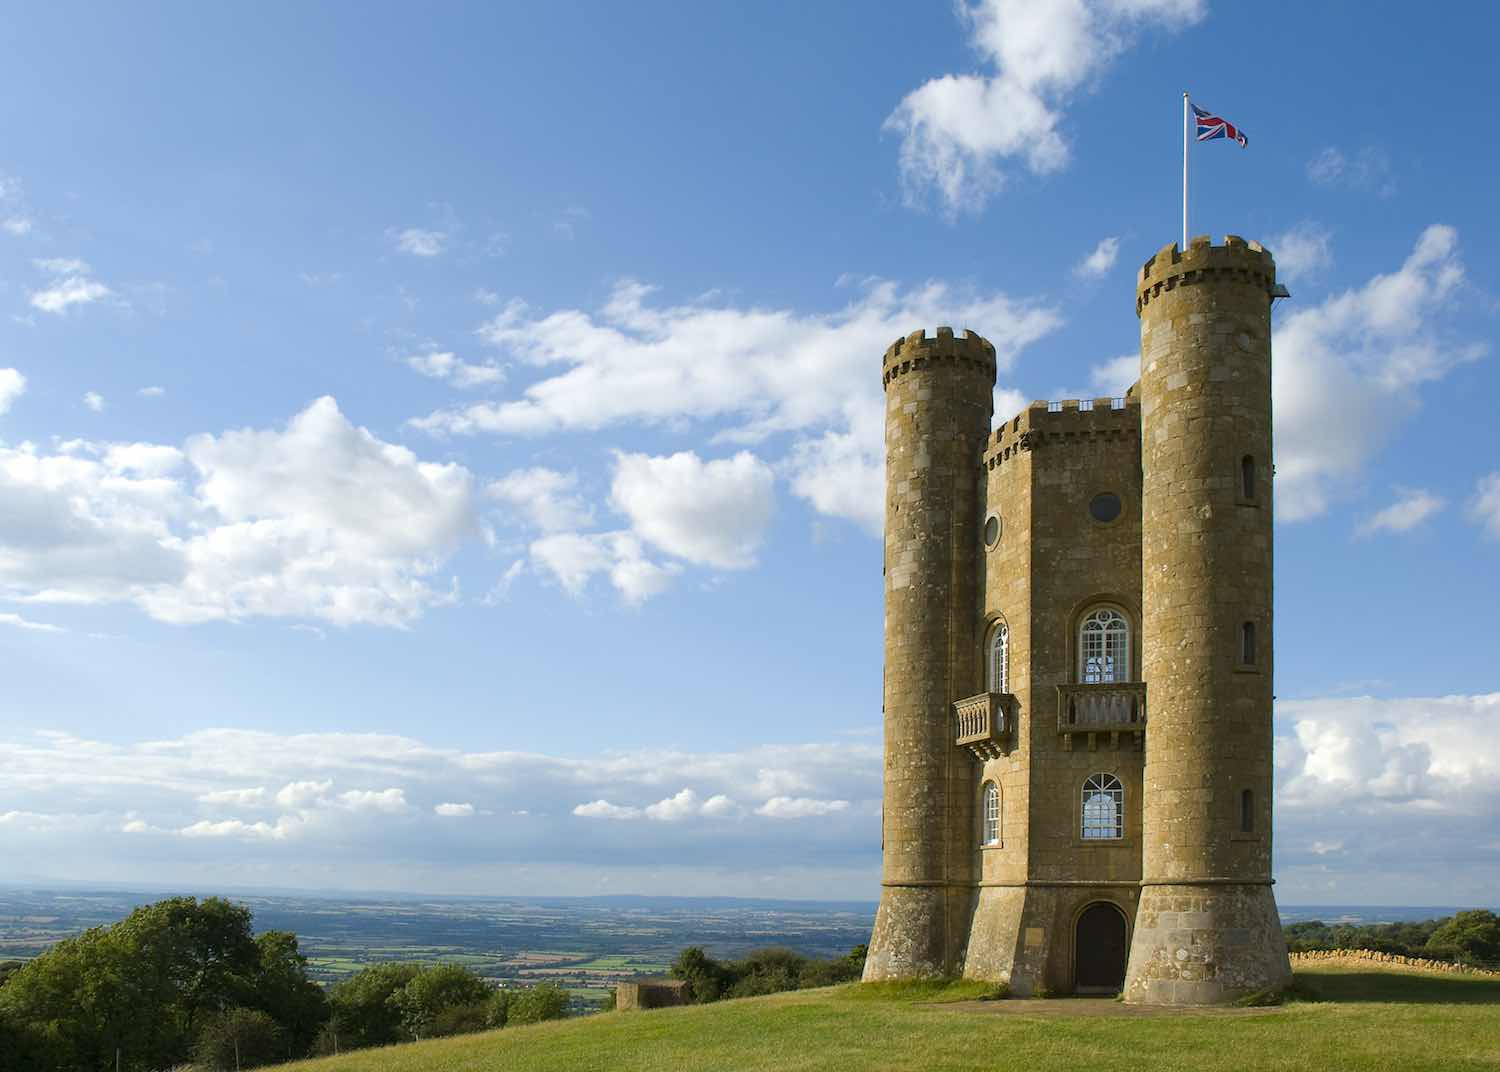 Broadway Tower, built for the Earl of Coventry in 1798